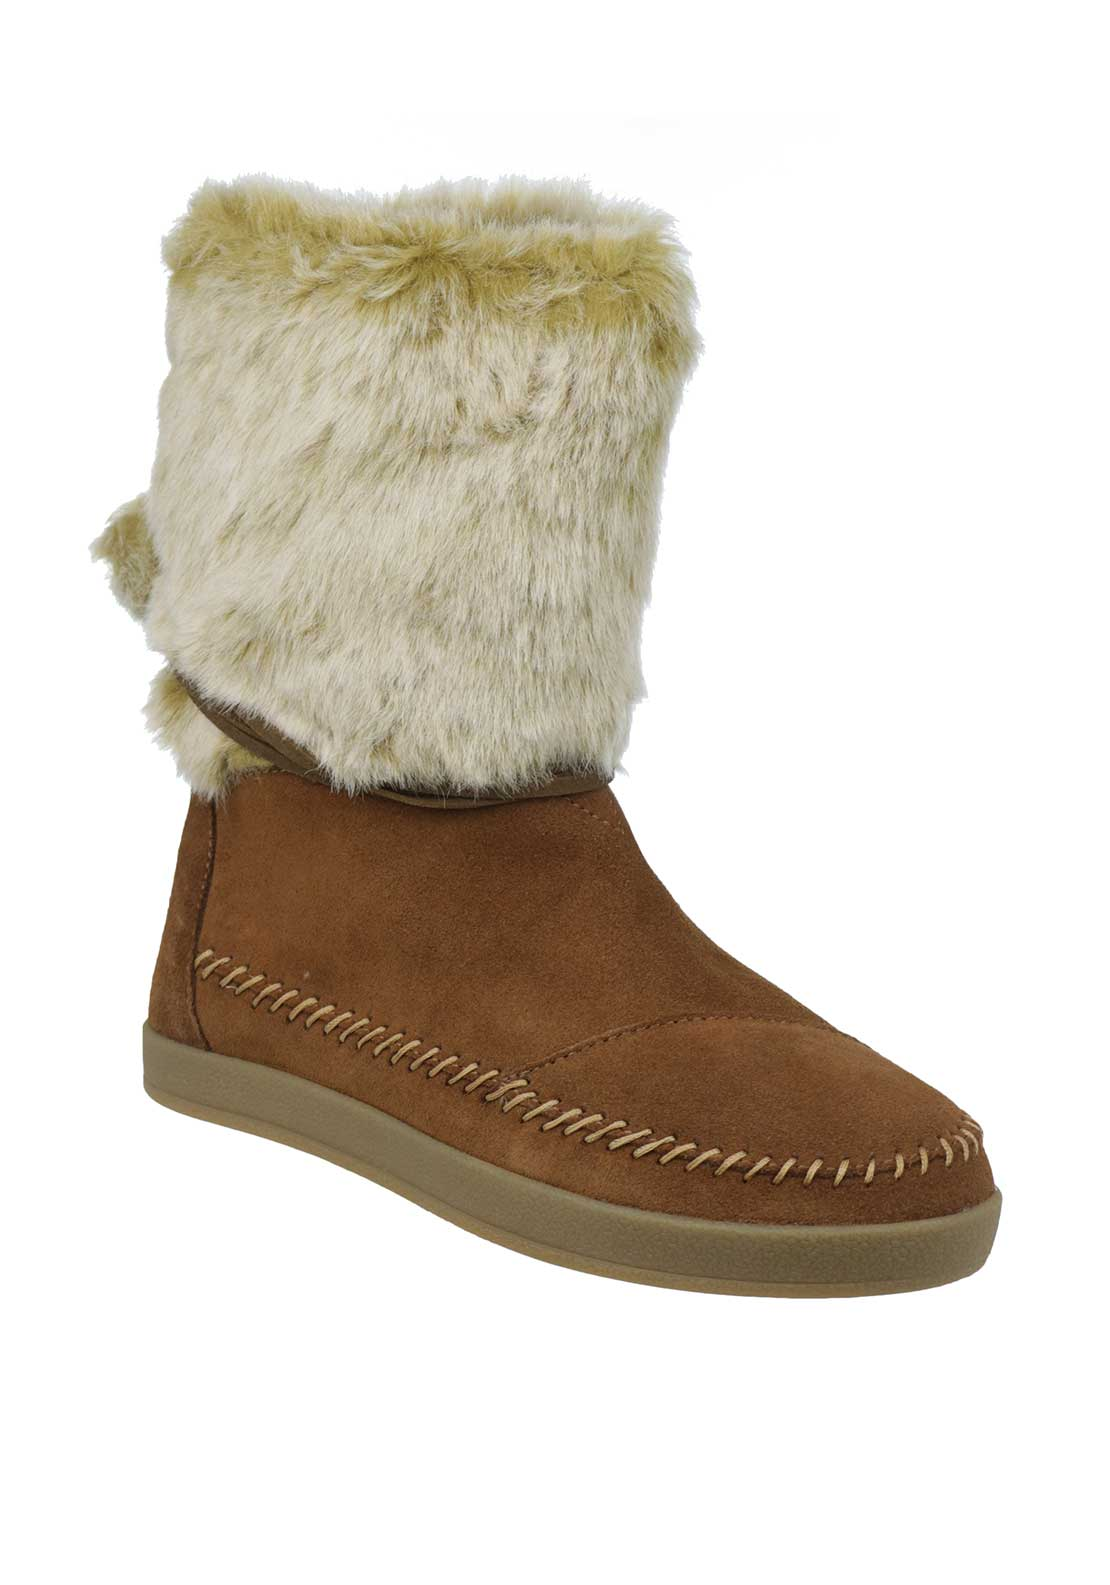 TOMS Womens Suede Nepal Boots, Tan